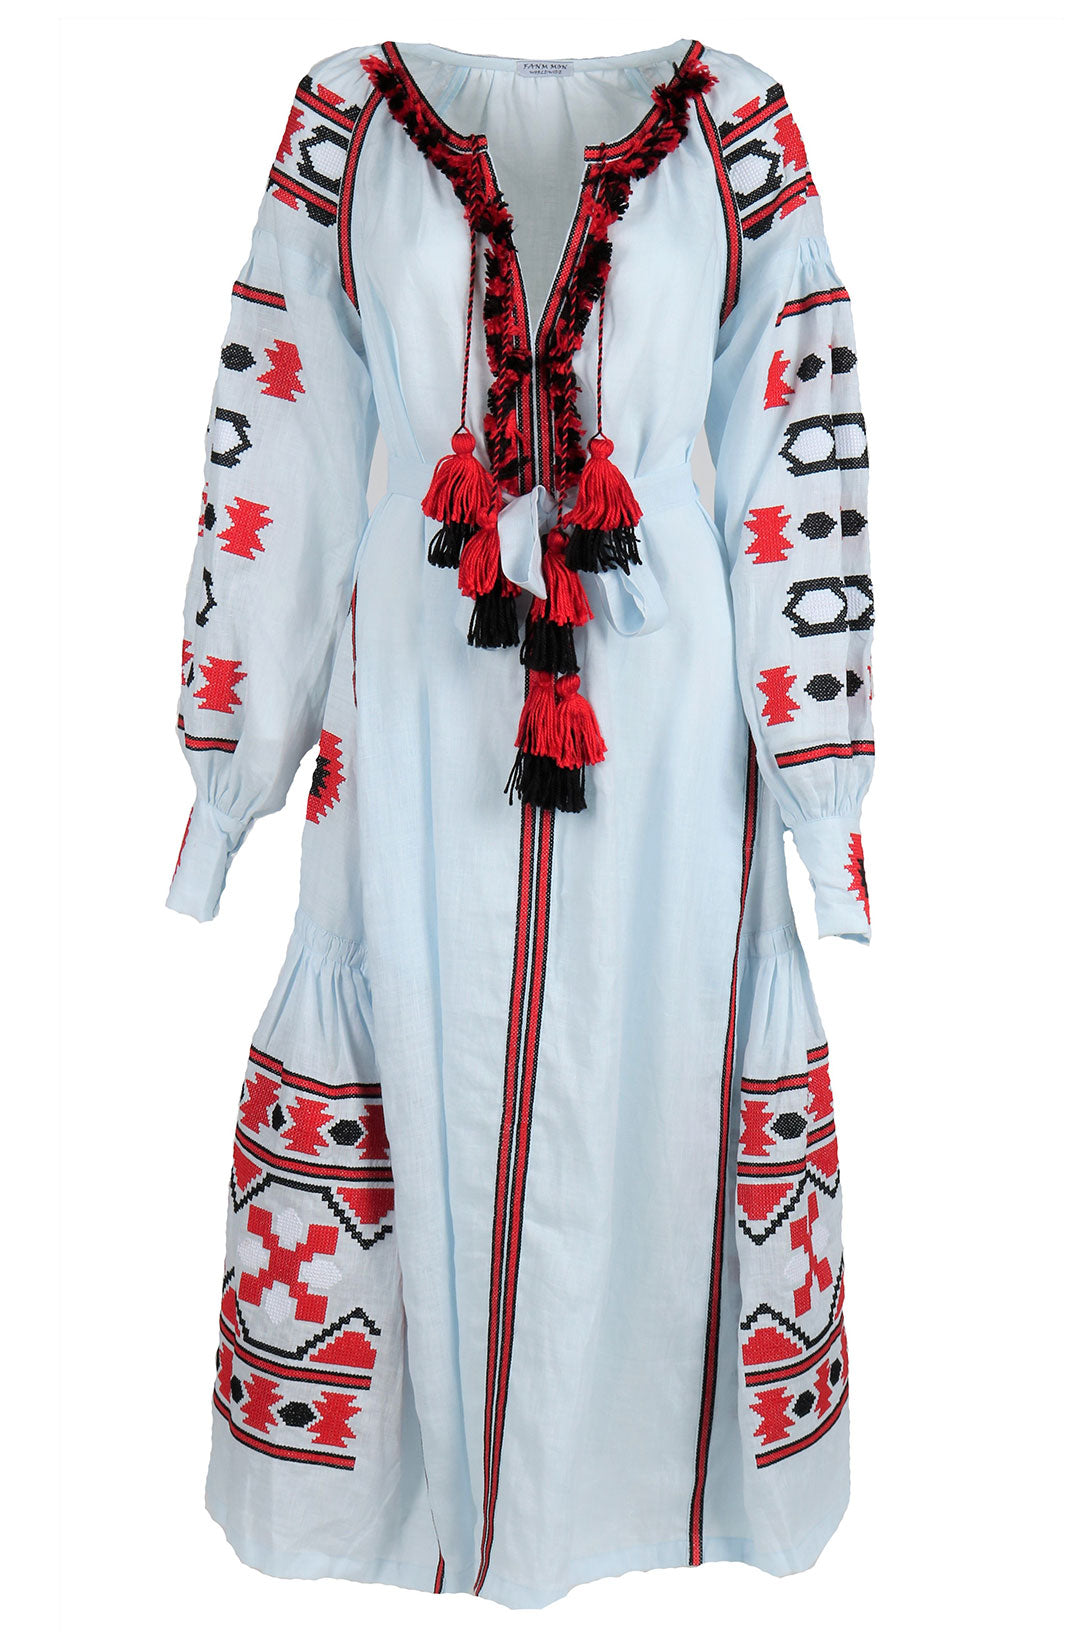 Fanm Mon Blue Linen Red Black Geometric Embroidery Vyshyvanka MIDI Dress Multi Color Embroidery size XS-XXL MD0113